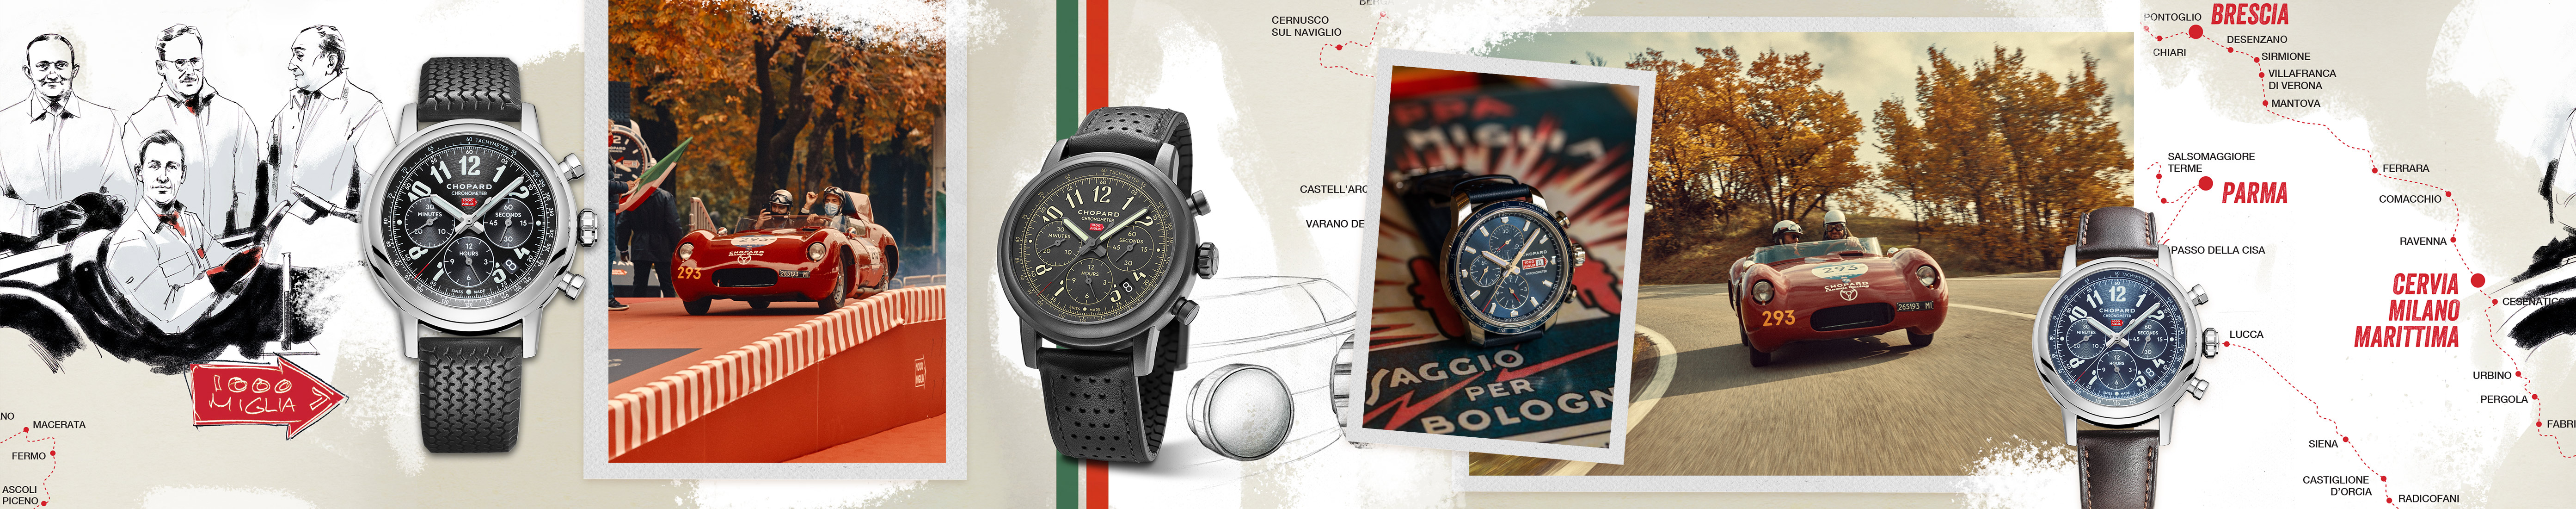 Several watches from the Mille Miglia Collection displayed, with a map of the Mille Miglia background